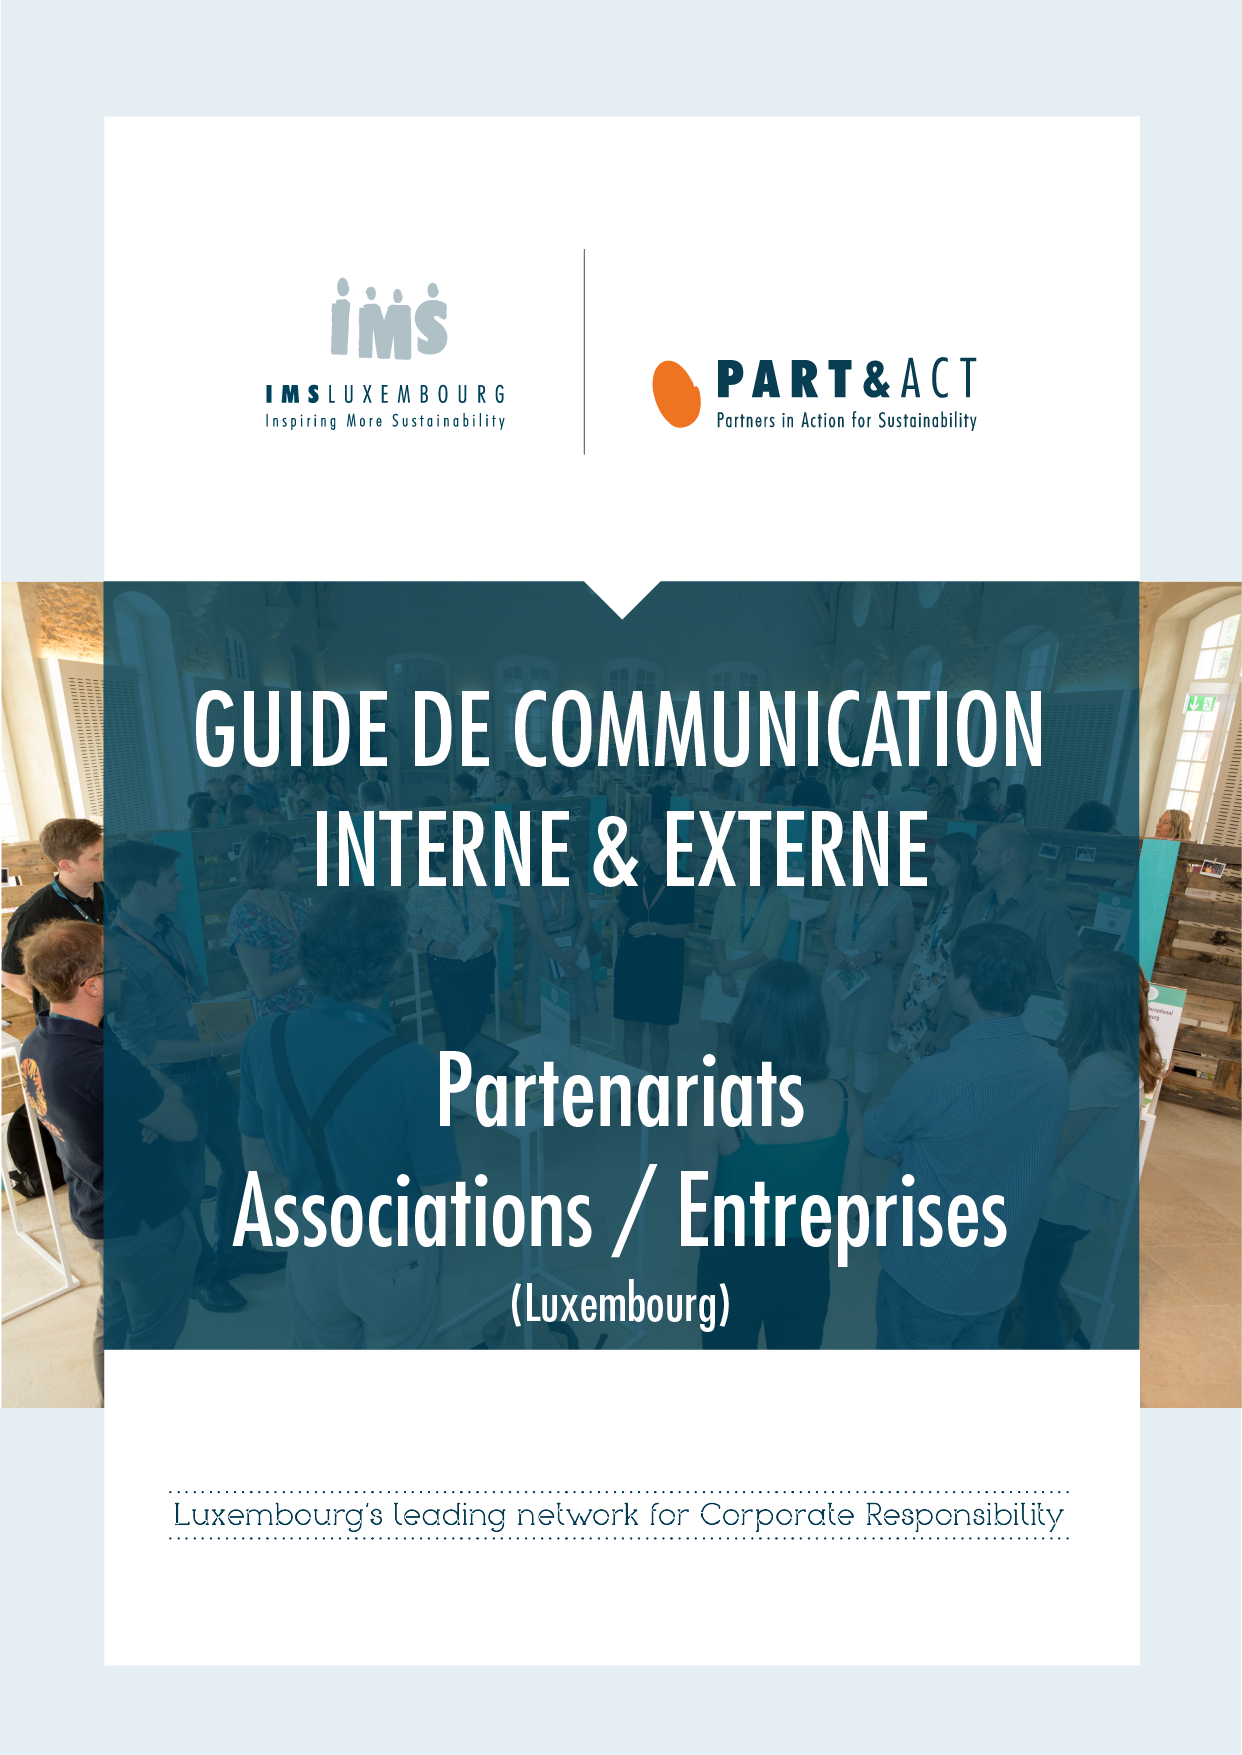 Guide de communication - Partenariats Associations/Entreprises